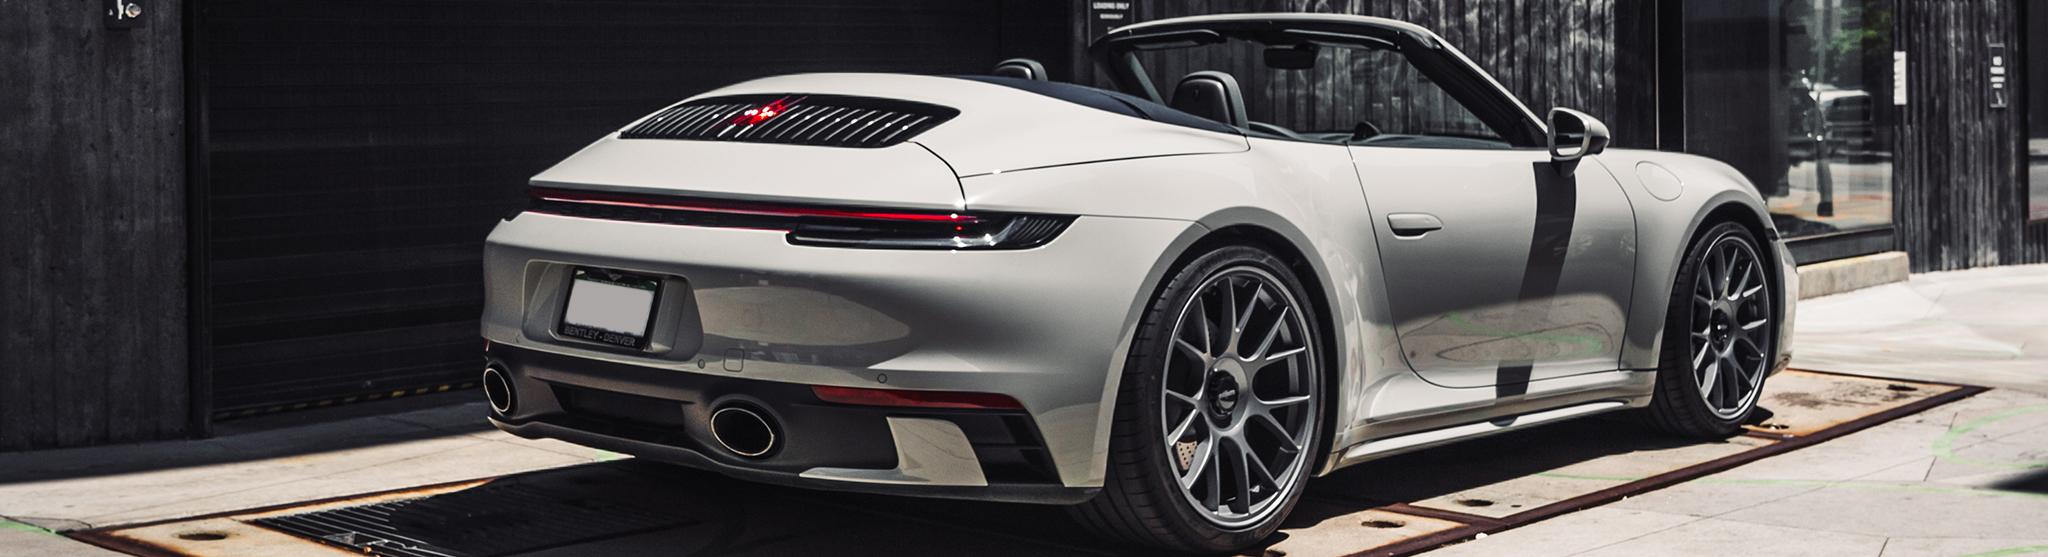 Introducing the TUF Forged Monoblock from Rotiform Wheels